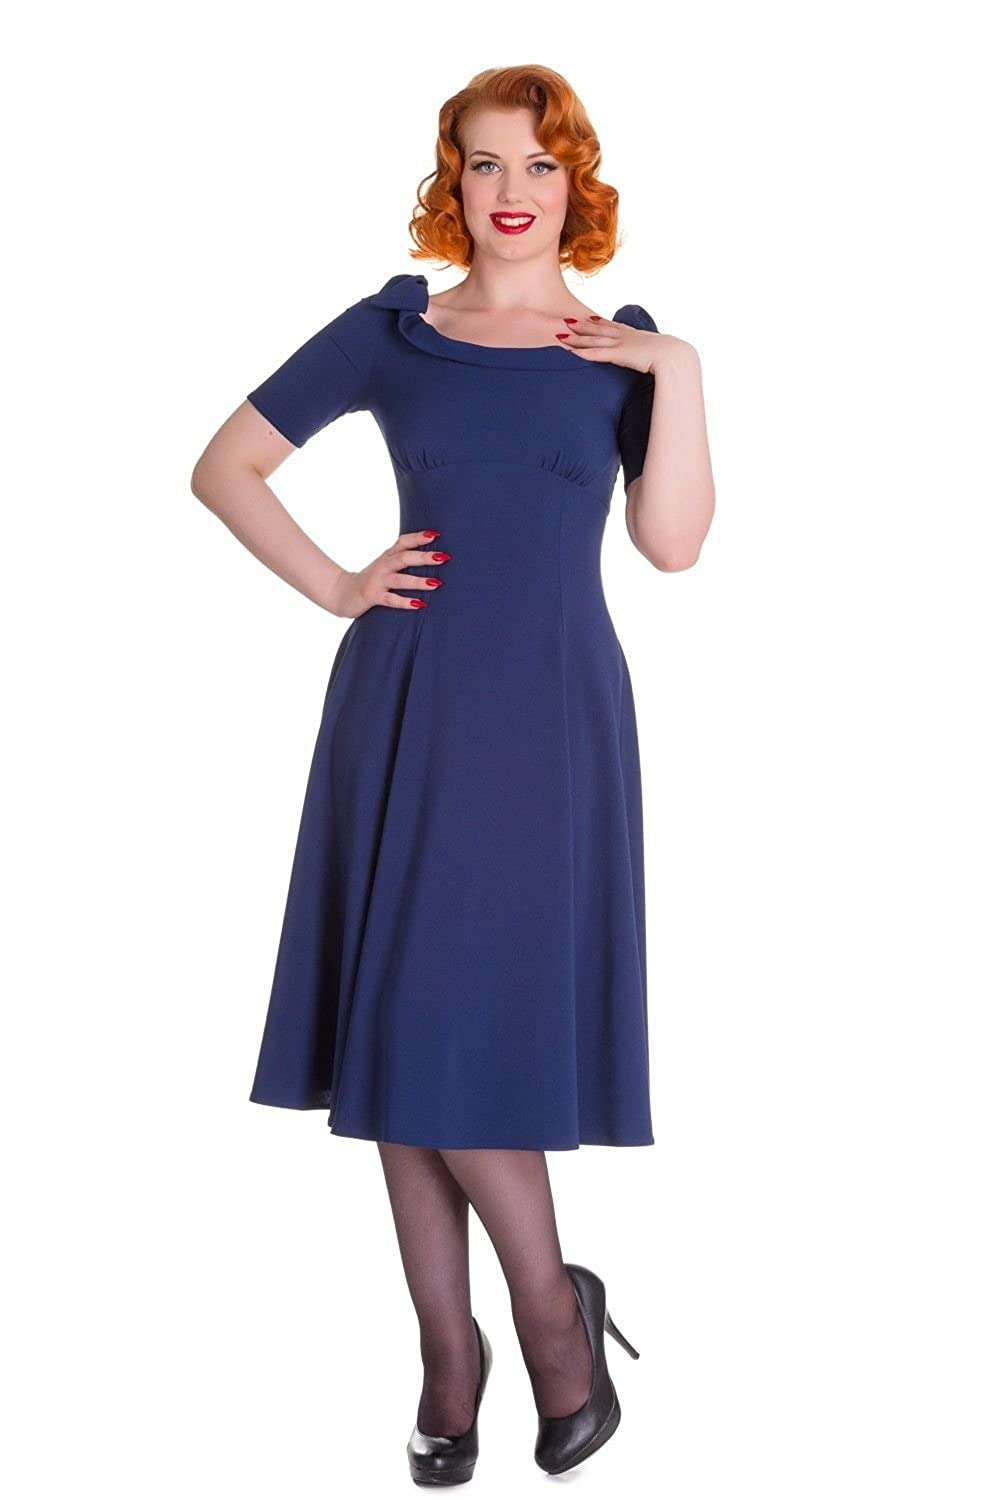 Plus Size Retro Dresses Hell Bunny Bianca Vintage Style 50s Dress $34.99 AT vintagedancer.com